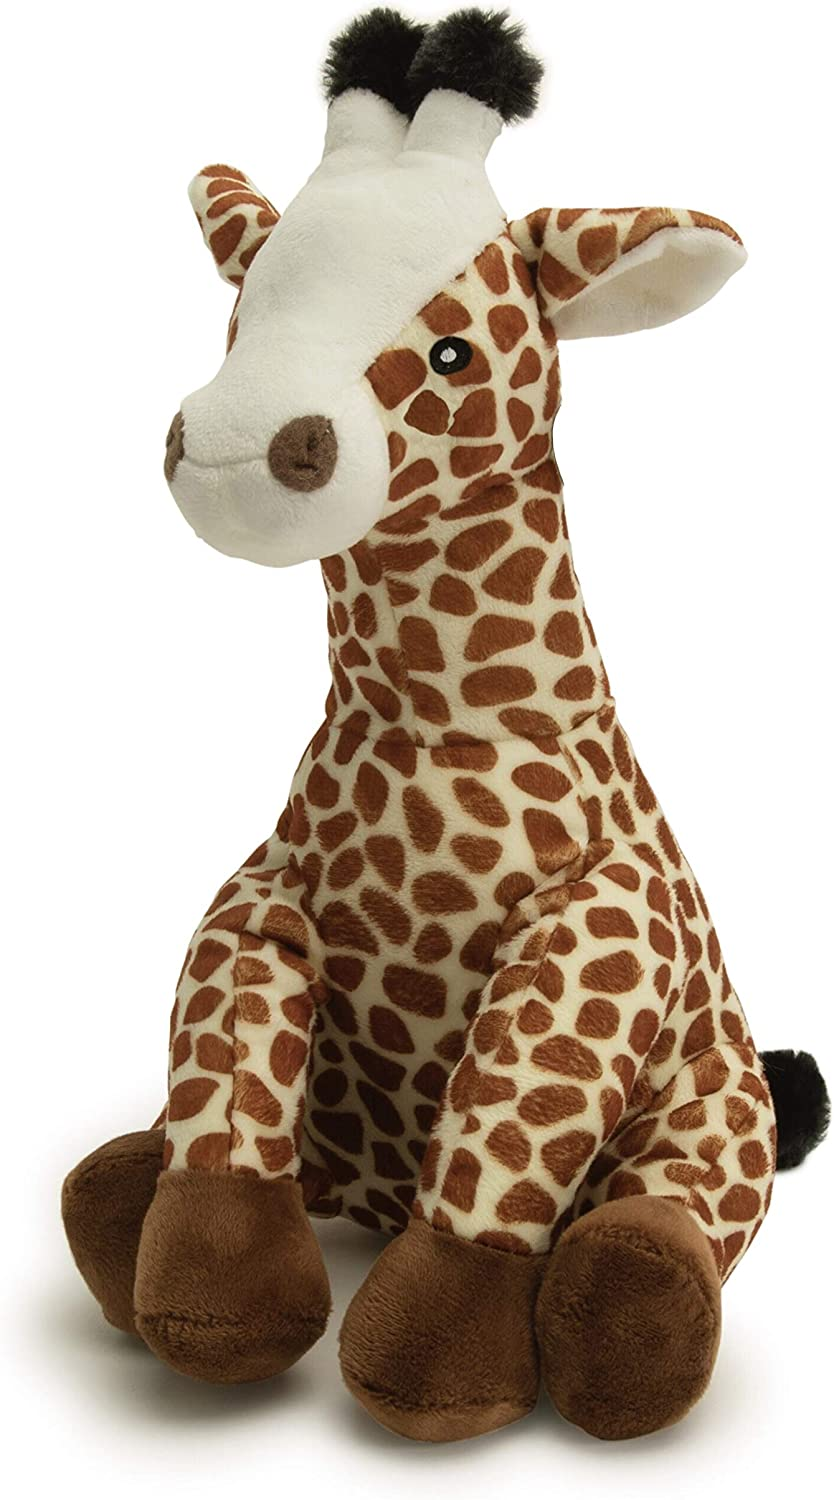 Farting Plush Dog Toy by The Farting Dog Company   Gilbert The Farting Giraffe   Interactive Stuffed Animal   Sound Module Insert